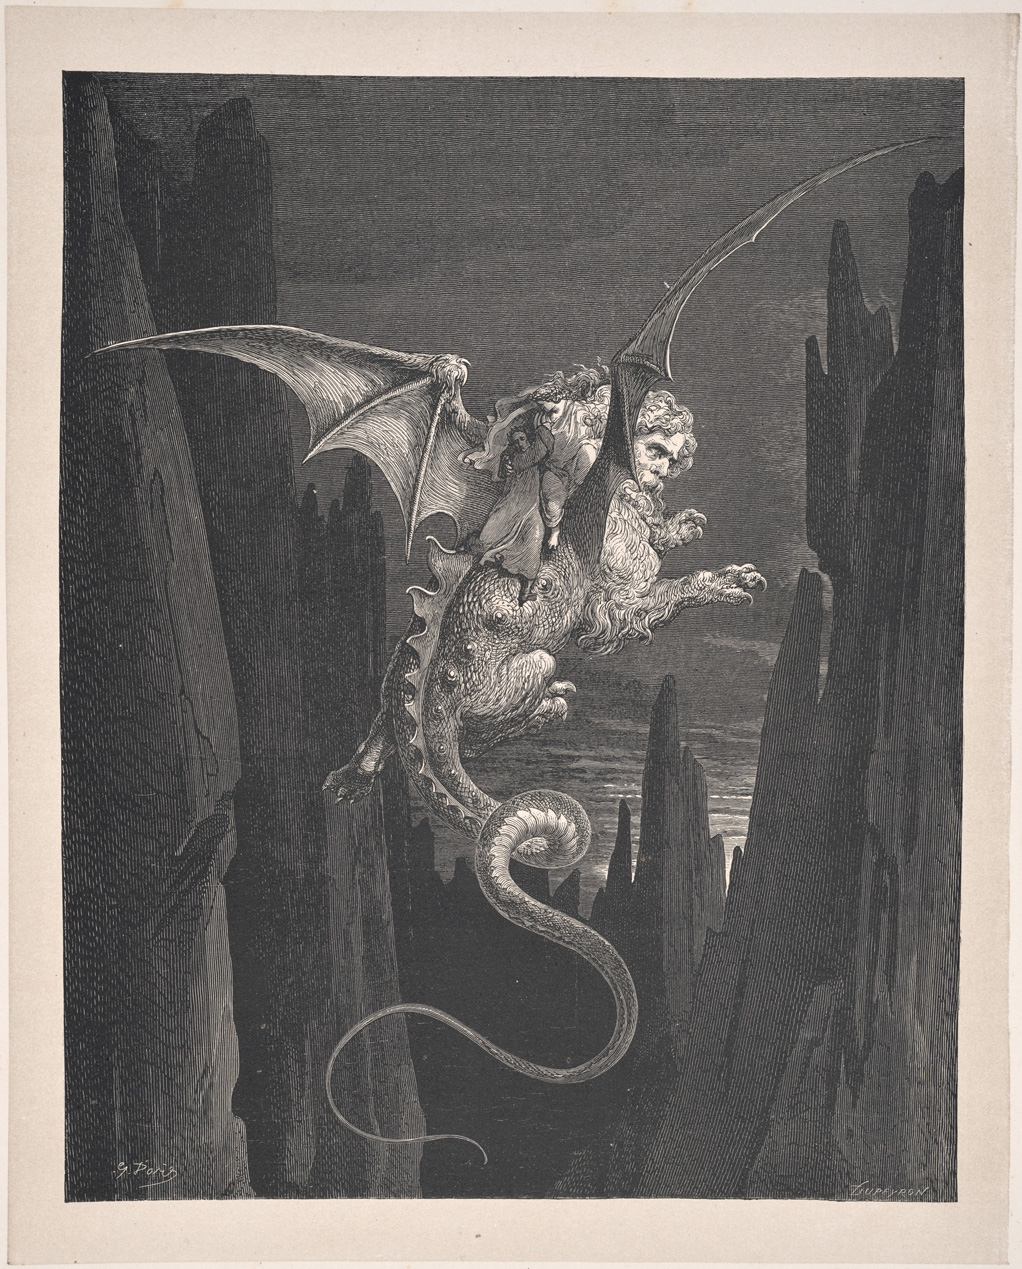 Hells Beasts And Bodies The Anatomy Of Hell The Poetry Of